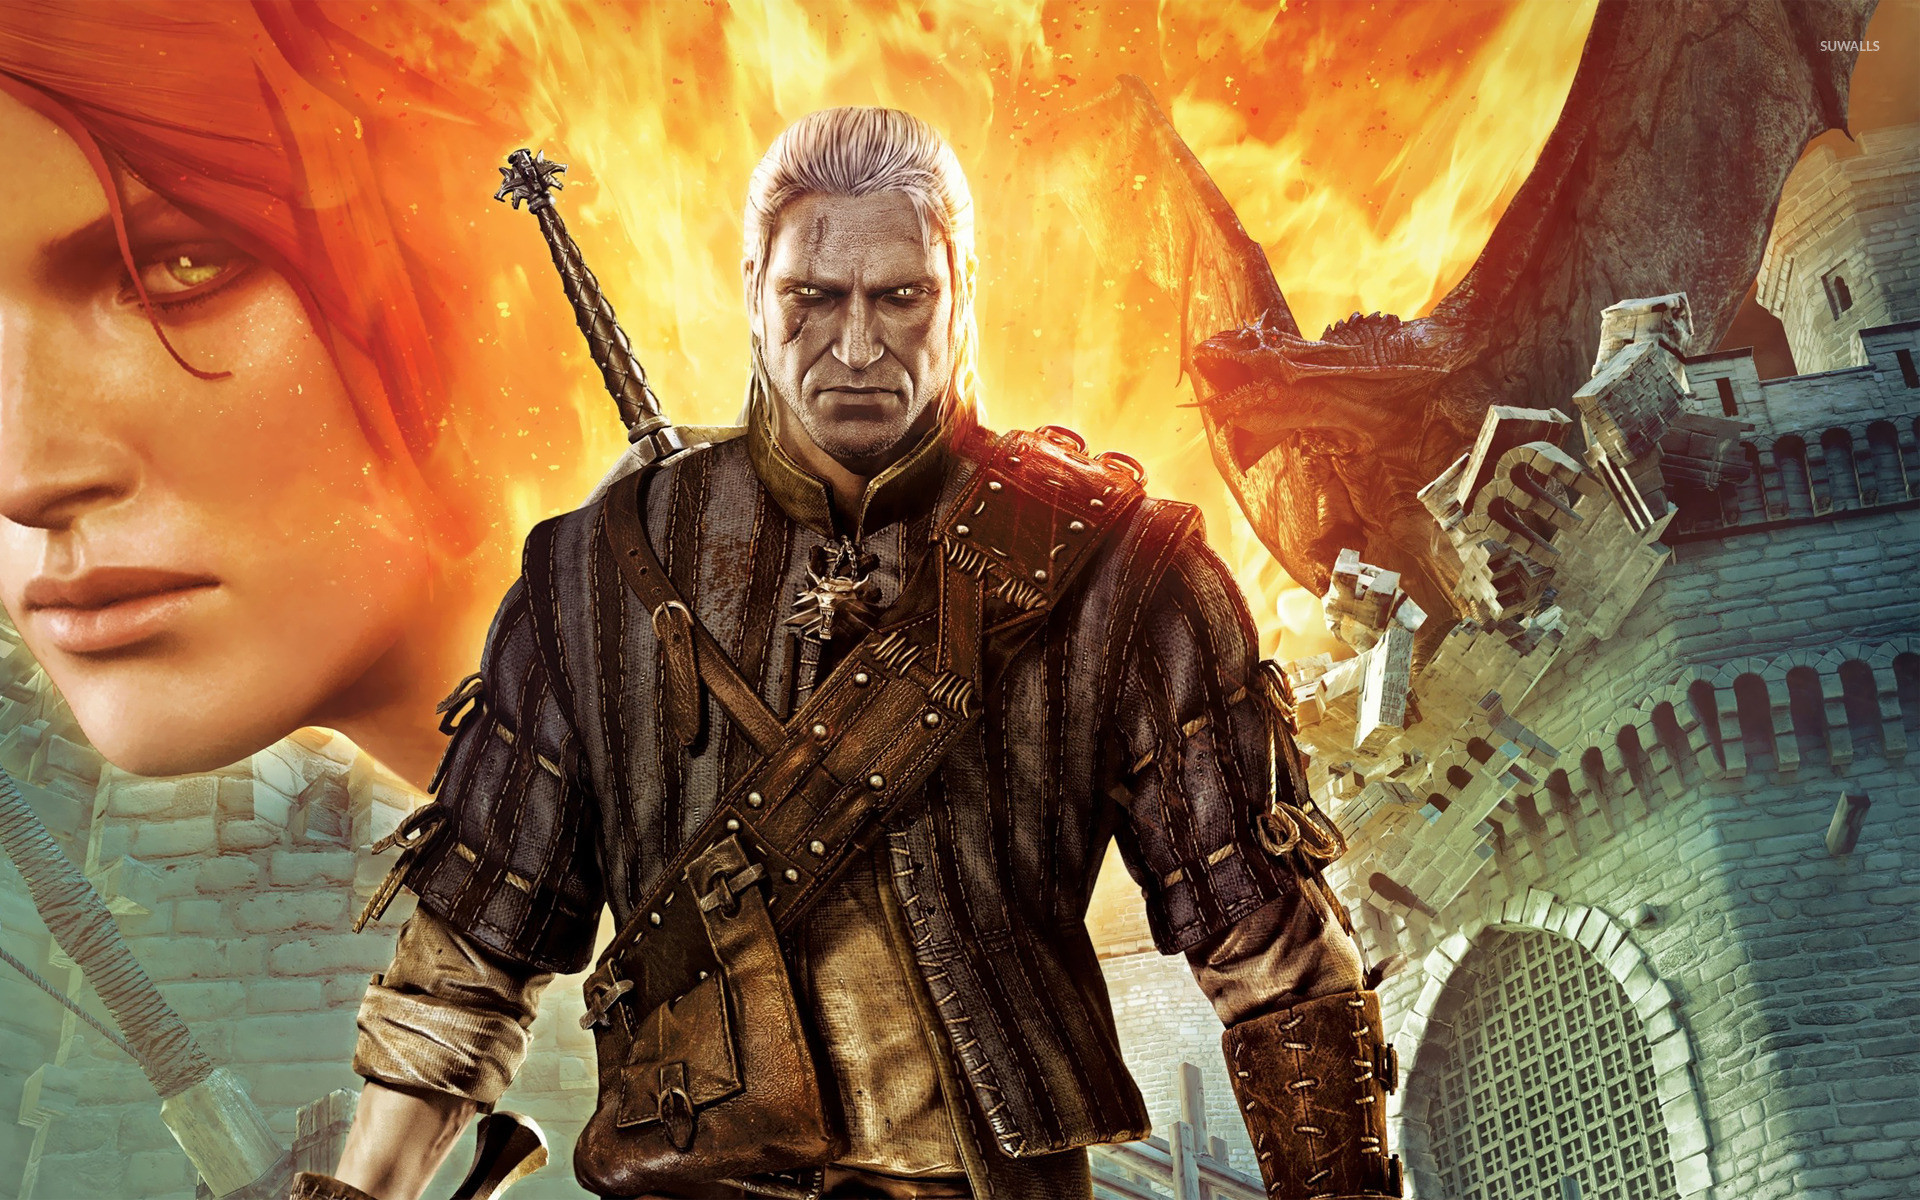 Res: 1920x1200, Triss Merigold and Geralt - The Witcher 2 wallpaper